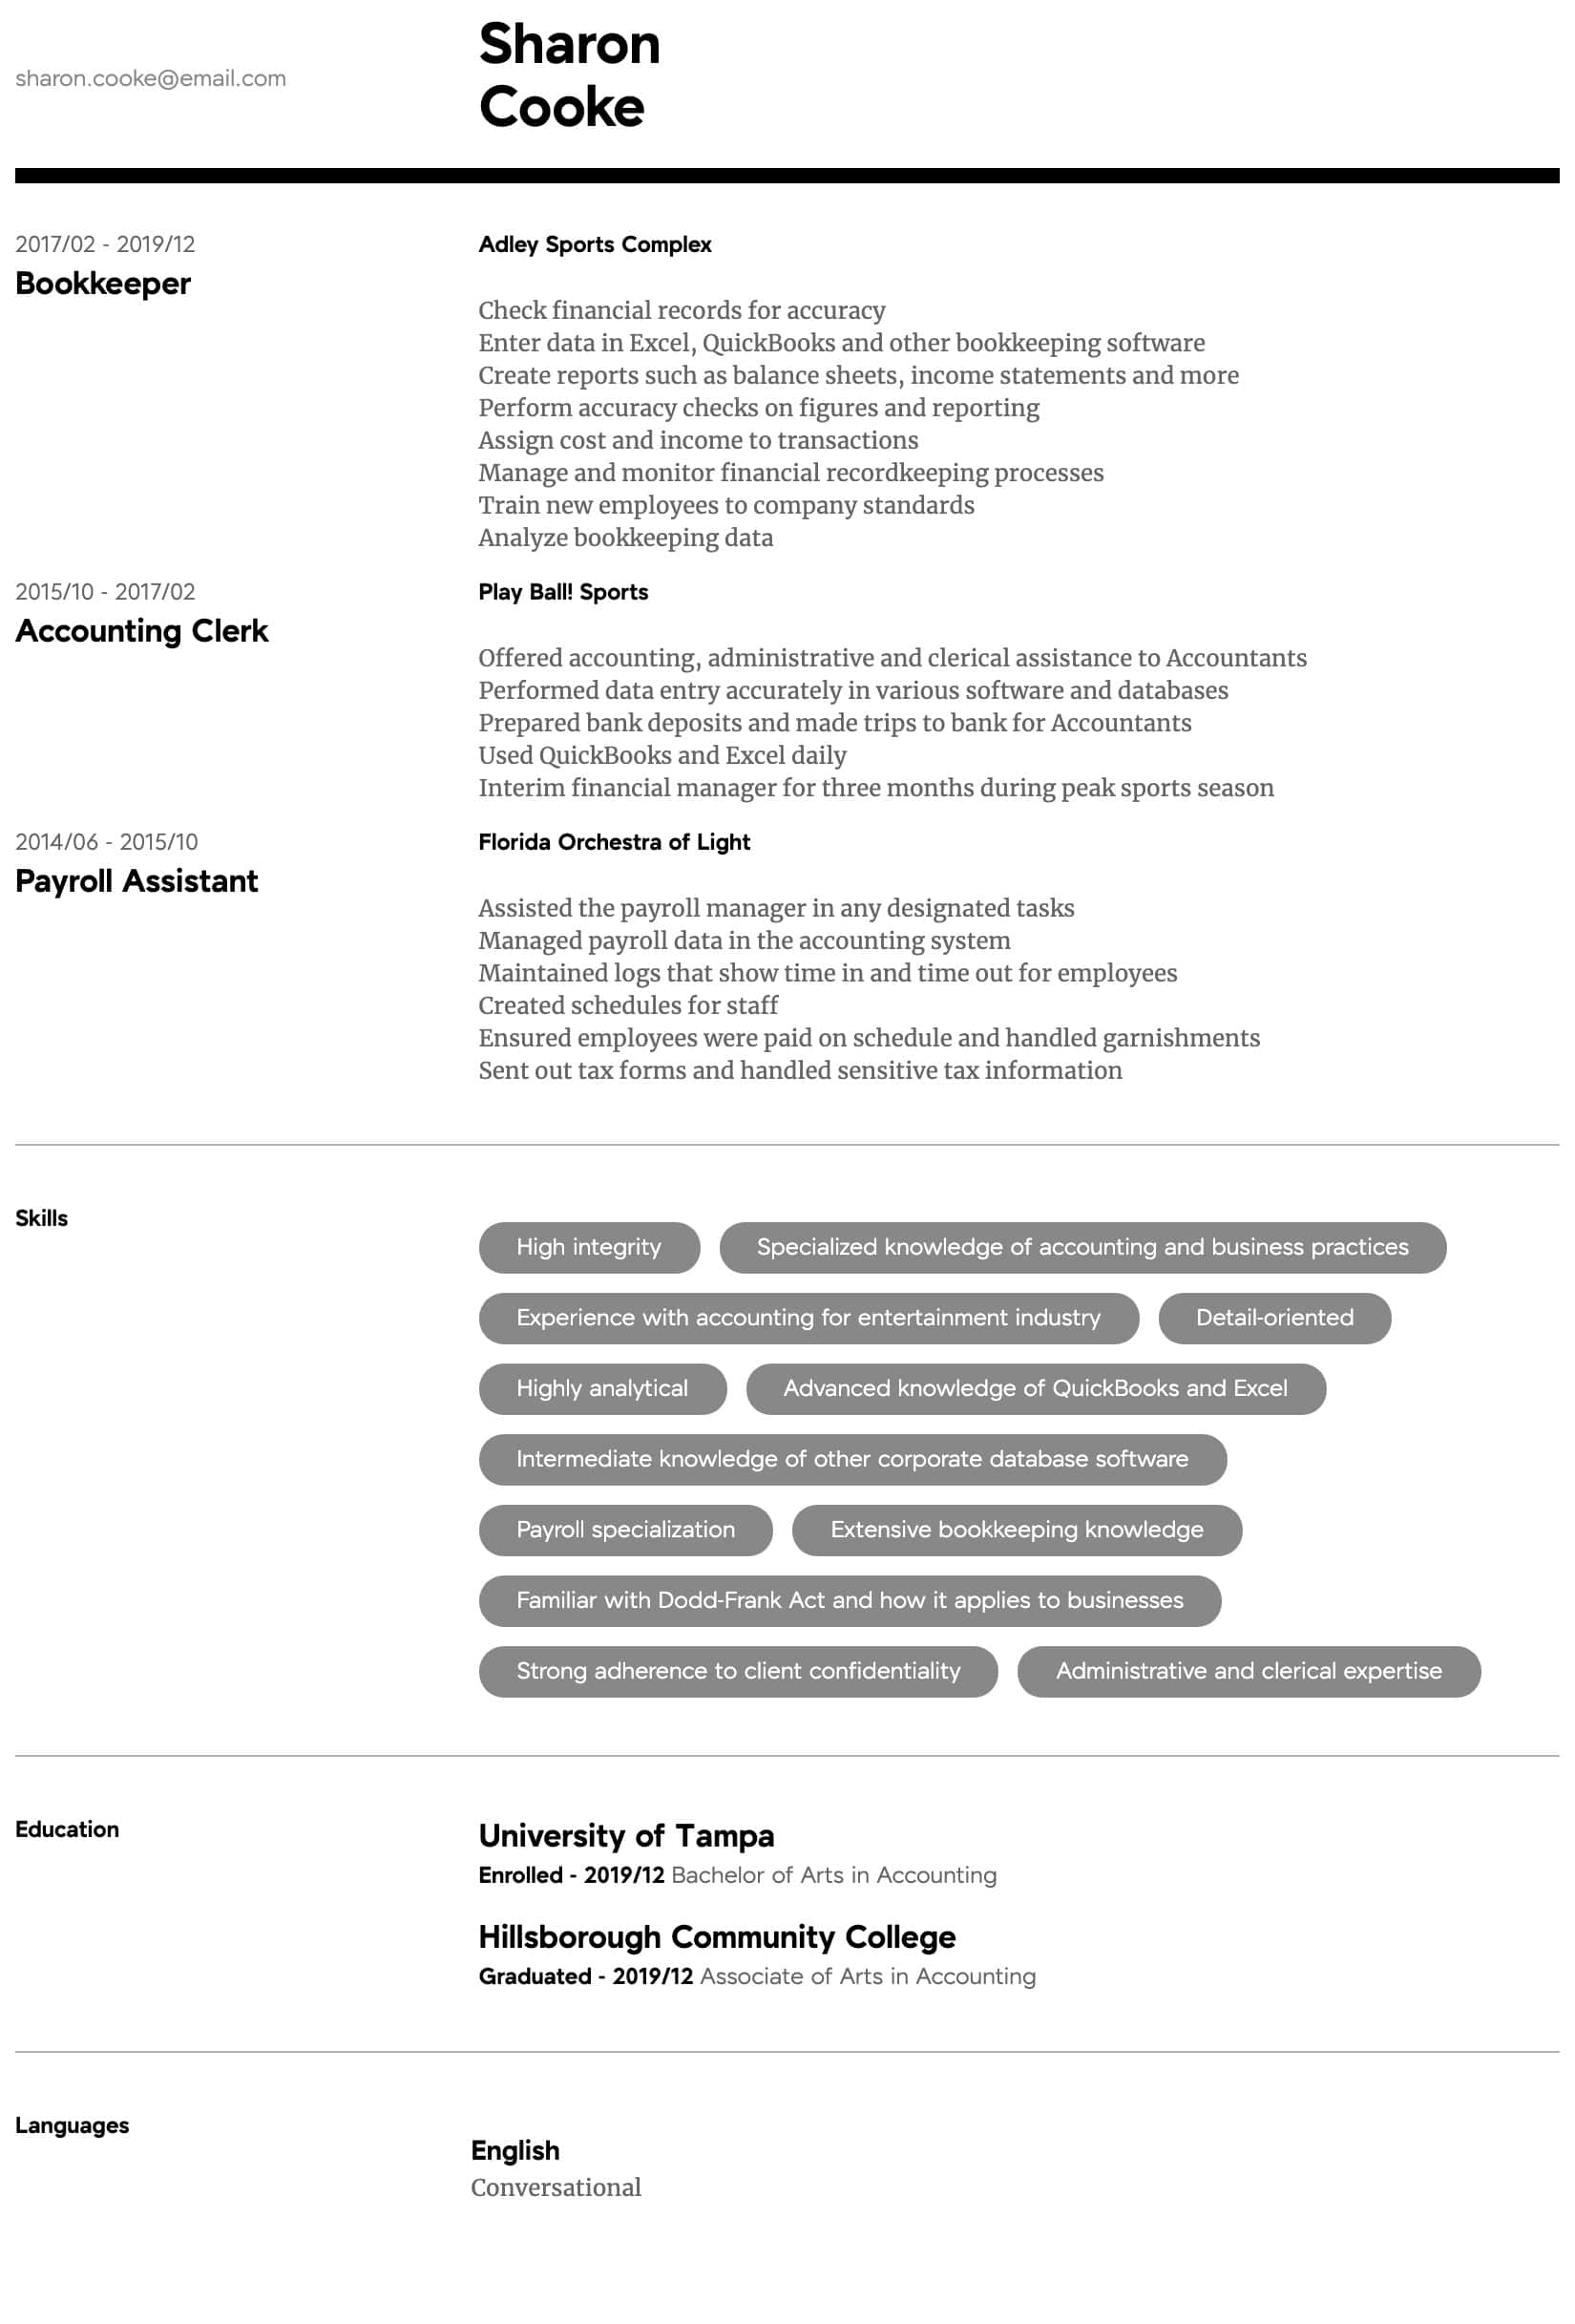 accountant resume samples all experience levels sample for accounting job intermediate Resume Sample Resume For Accounting Job